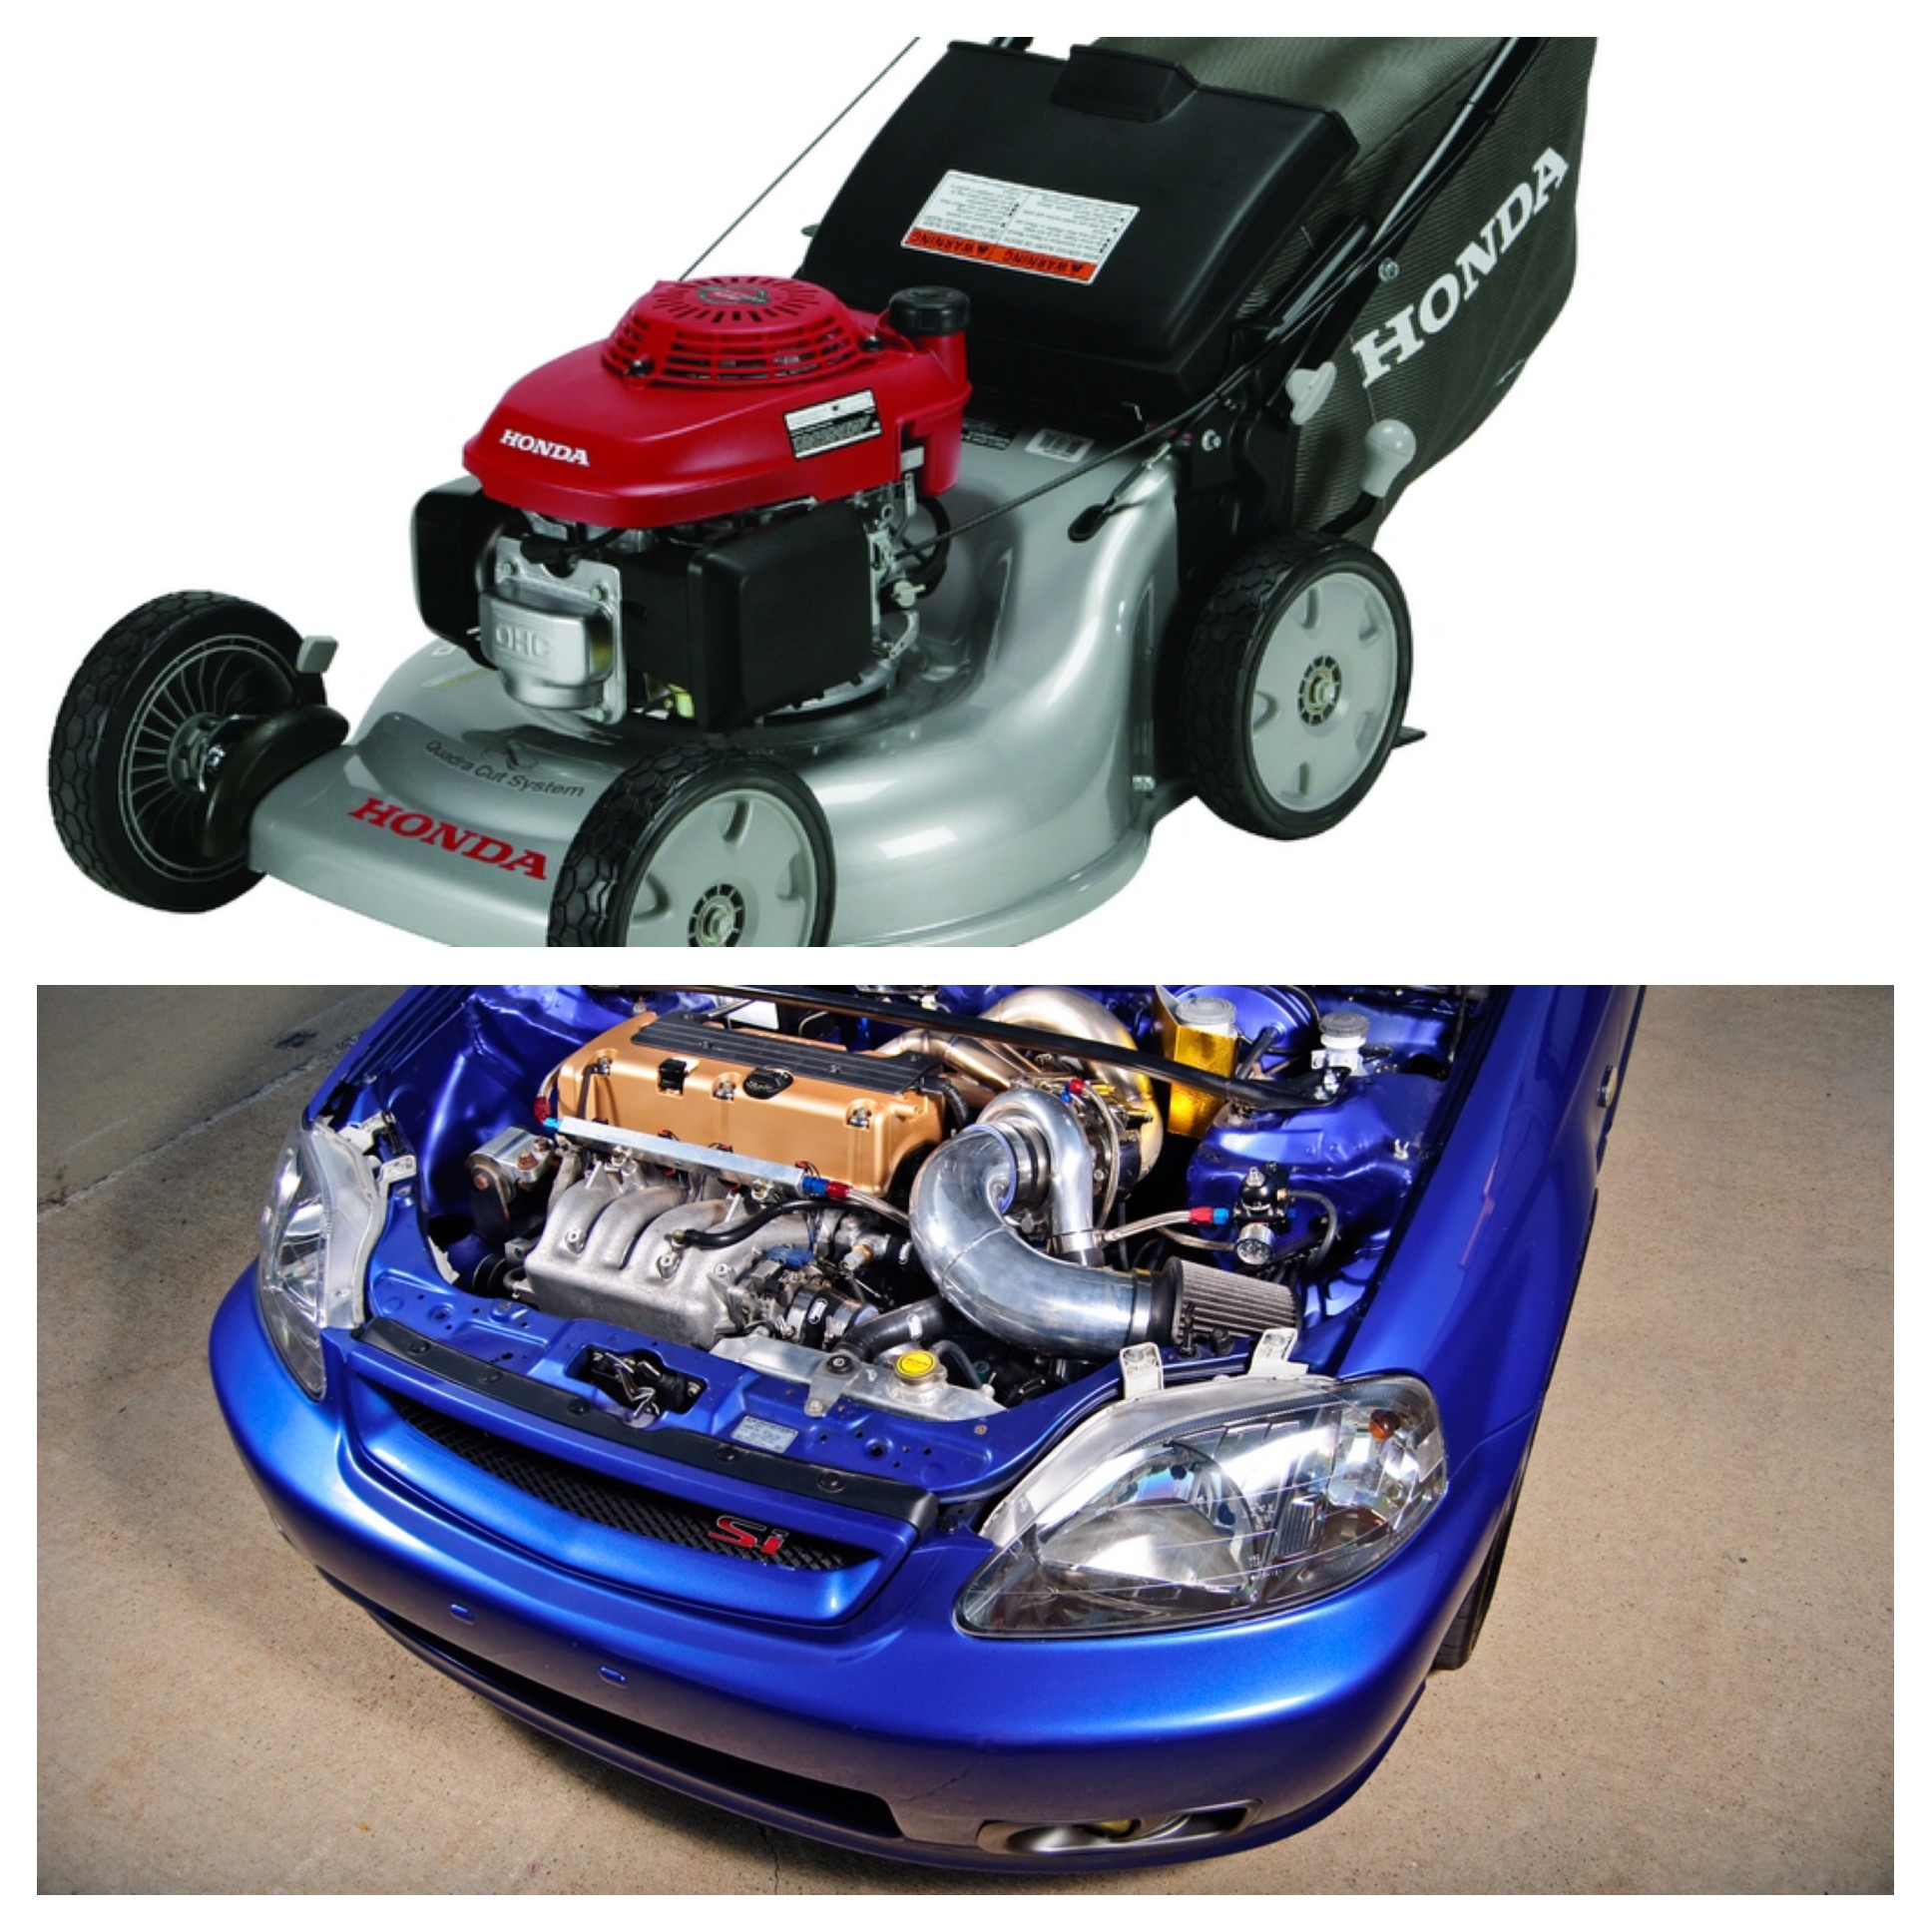 This Is Not A Joke Bashing Hondas Im Showing The Difference For People Who Dont Know Between Car And Lawn Mower